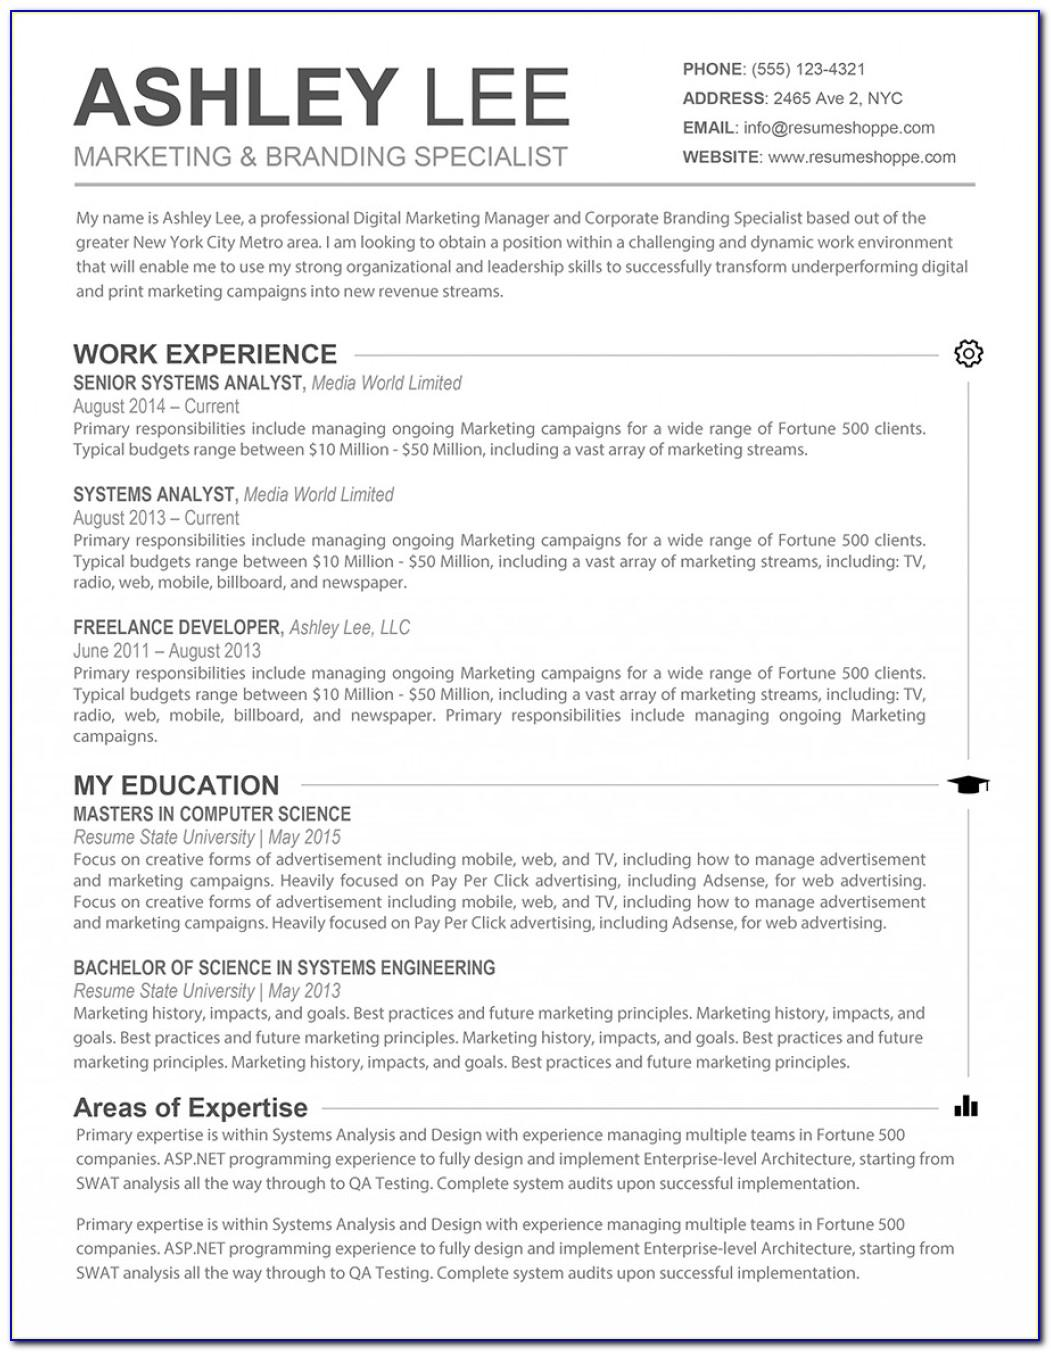 Resume Template Mac Pages Free